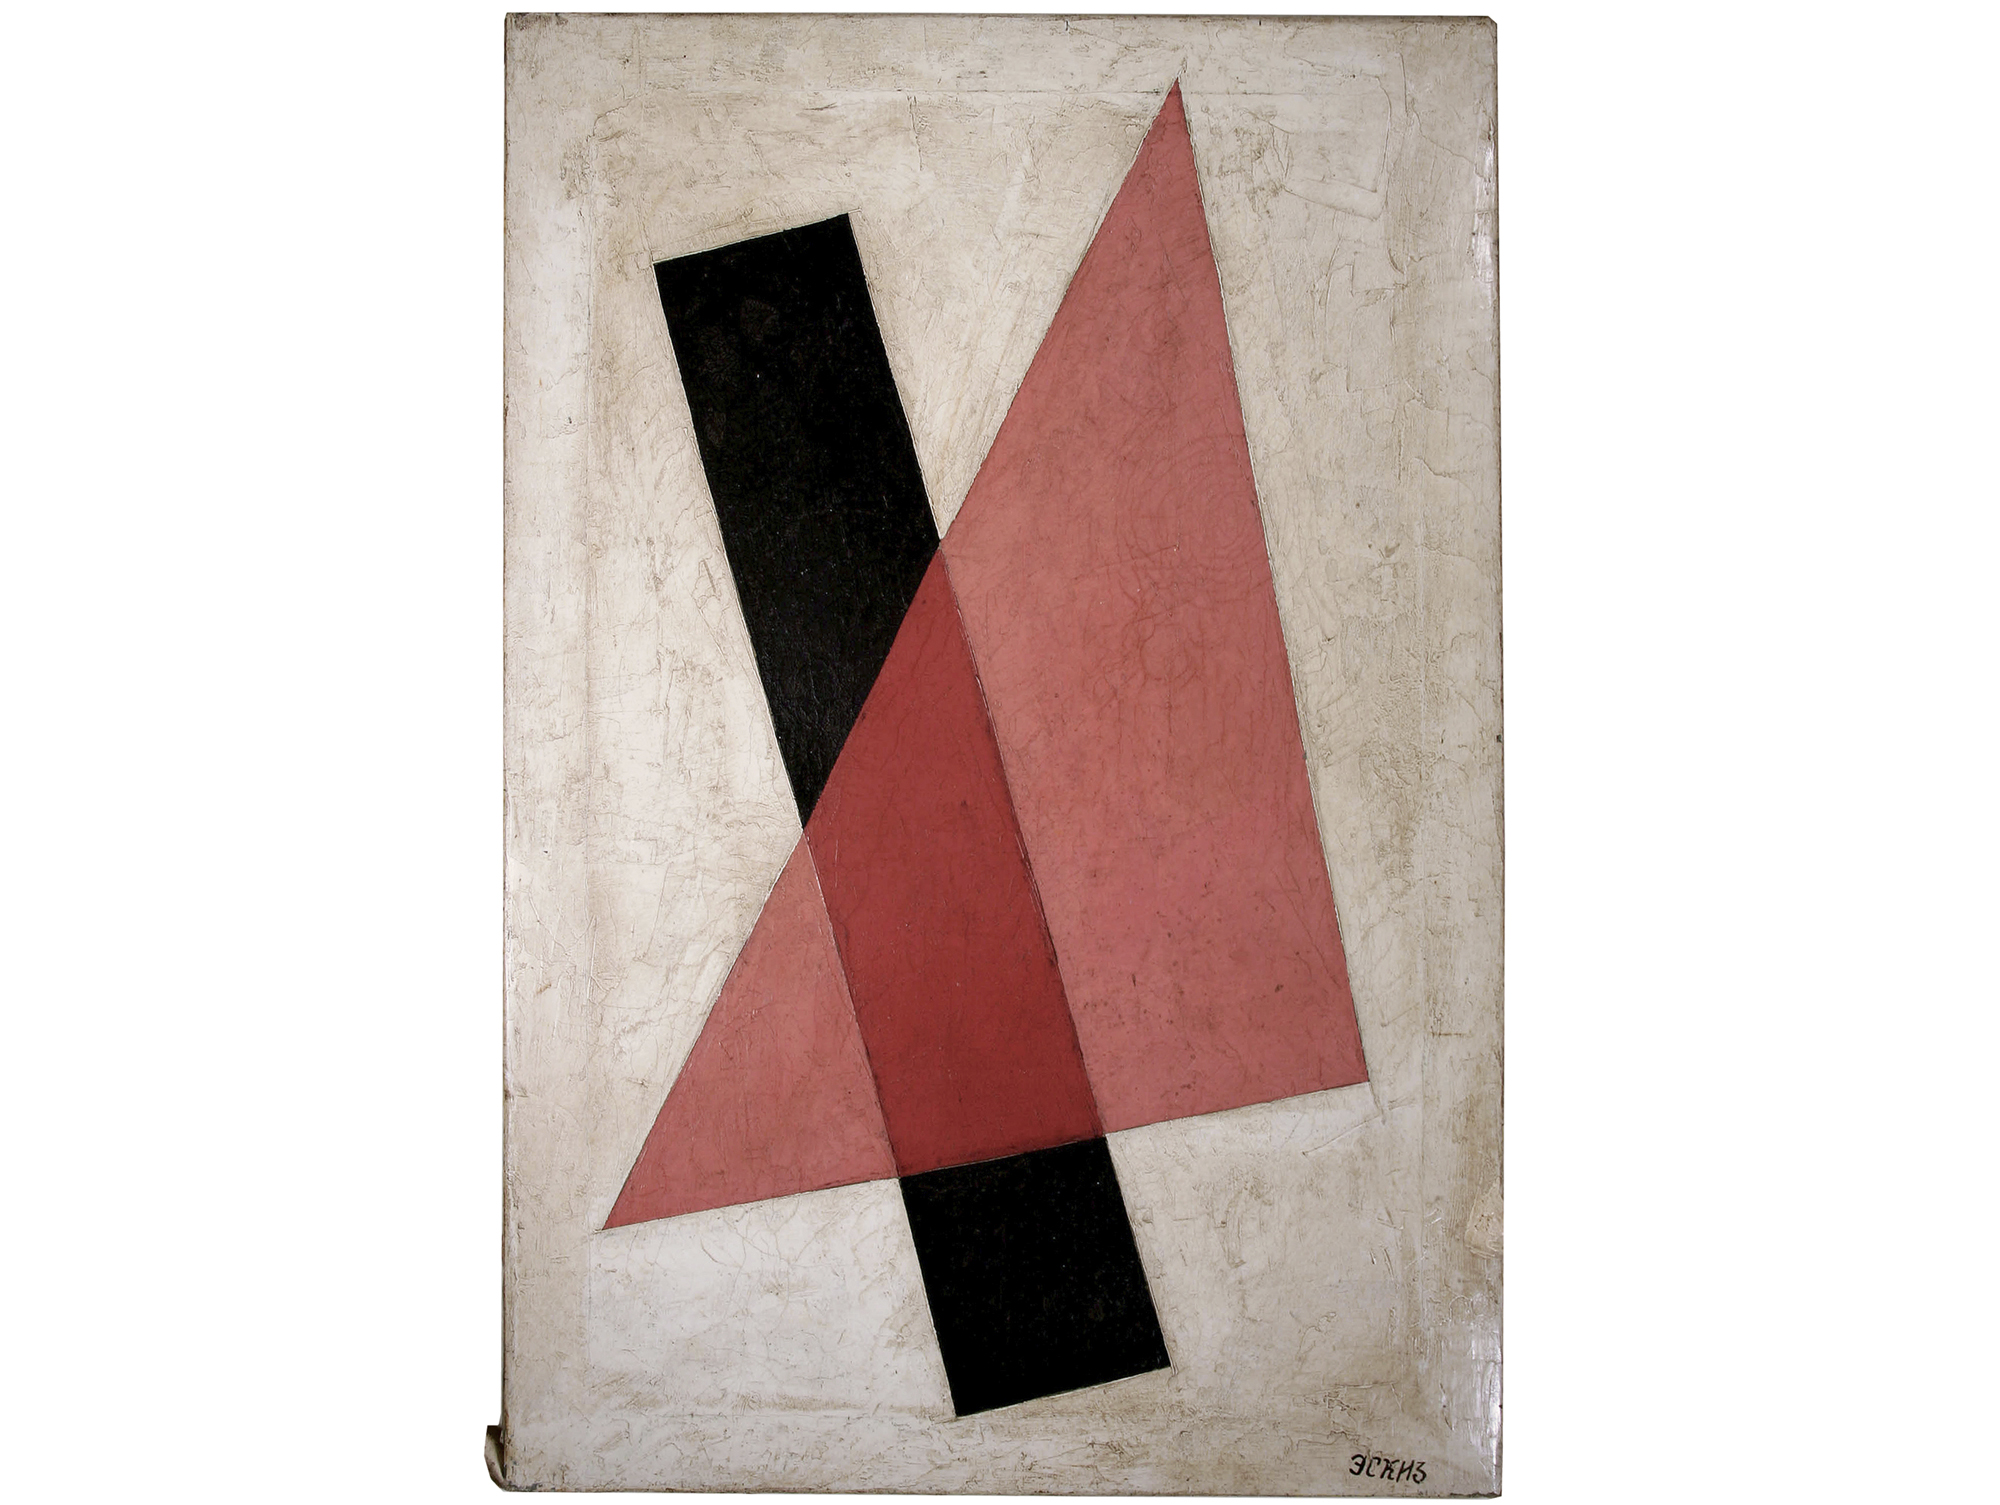 """Unattributed. Unsigned. In the style of Lyubov Popova.Text in Russian, lower right front corner, translates to """"Sketch"""".     Oil on Canvas. 60.5 x 40 cm."""